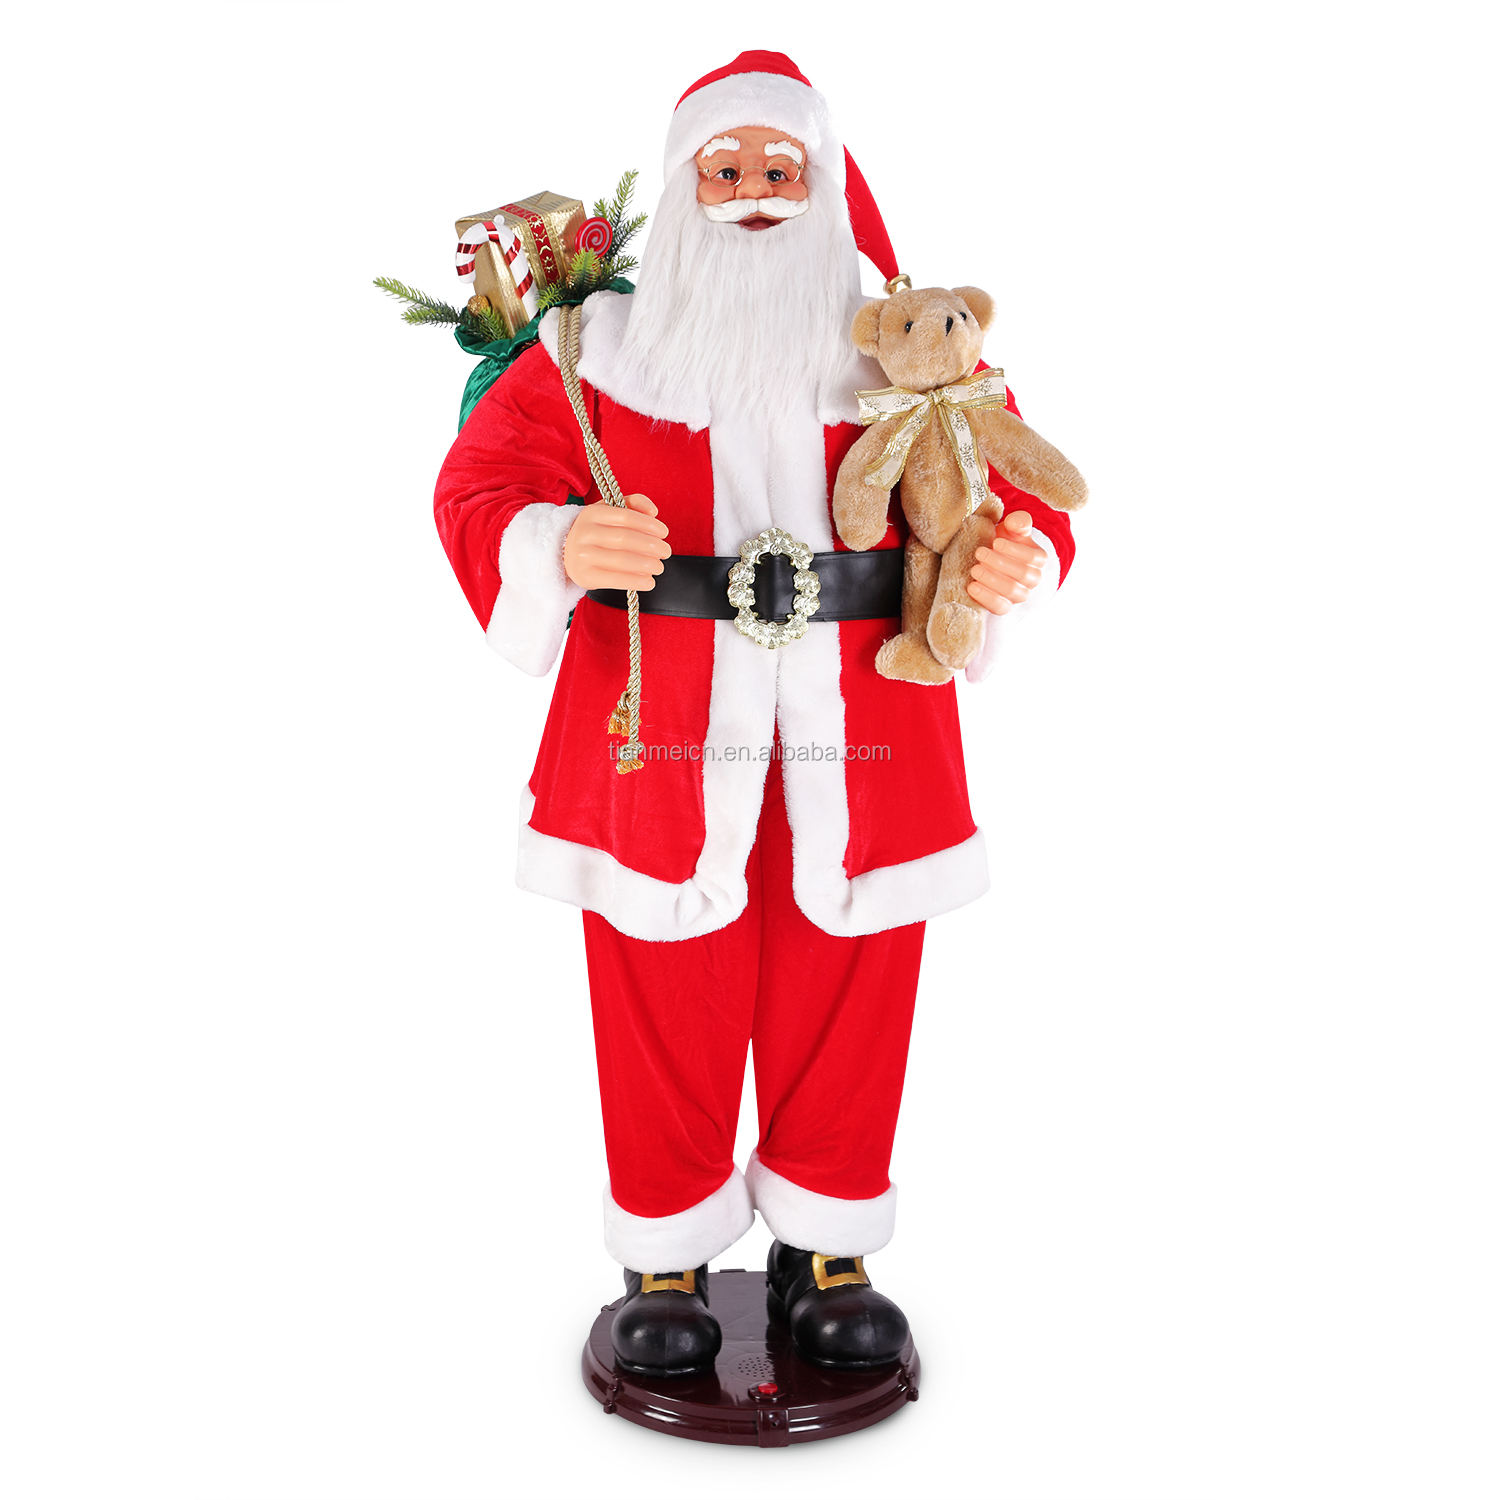 150cm Life Size Animated Rock Singing and Dancing Santa Claus Figurine Holiday Gift Collapsible Decoration Collection Sensor